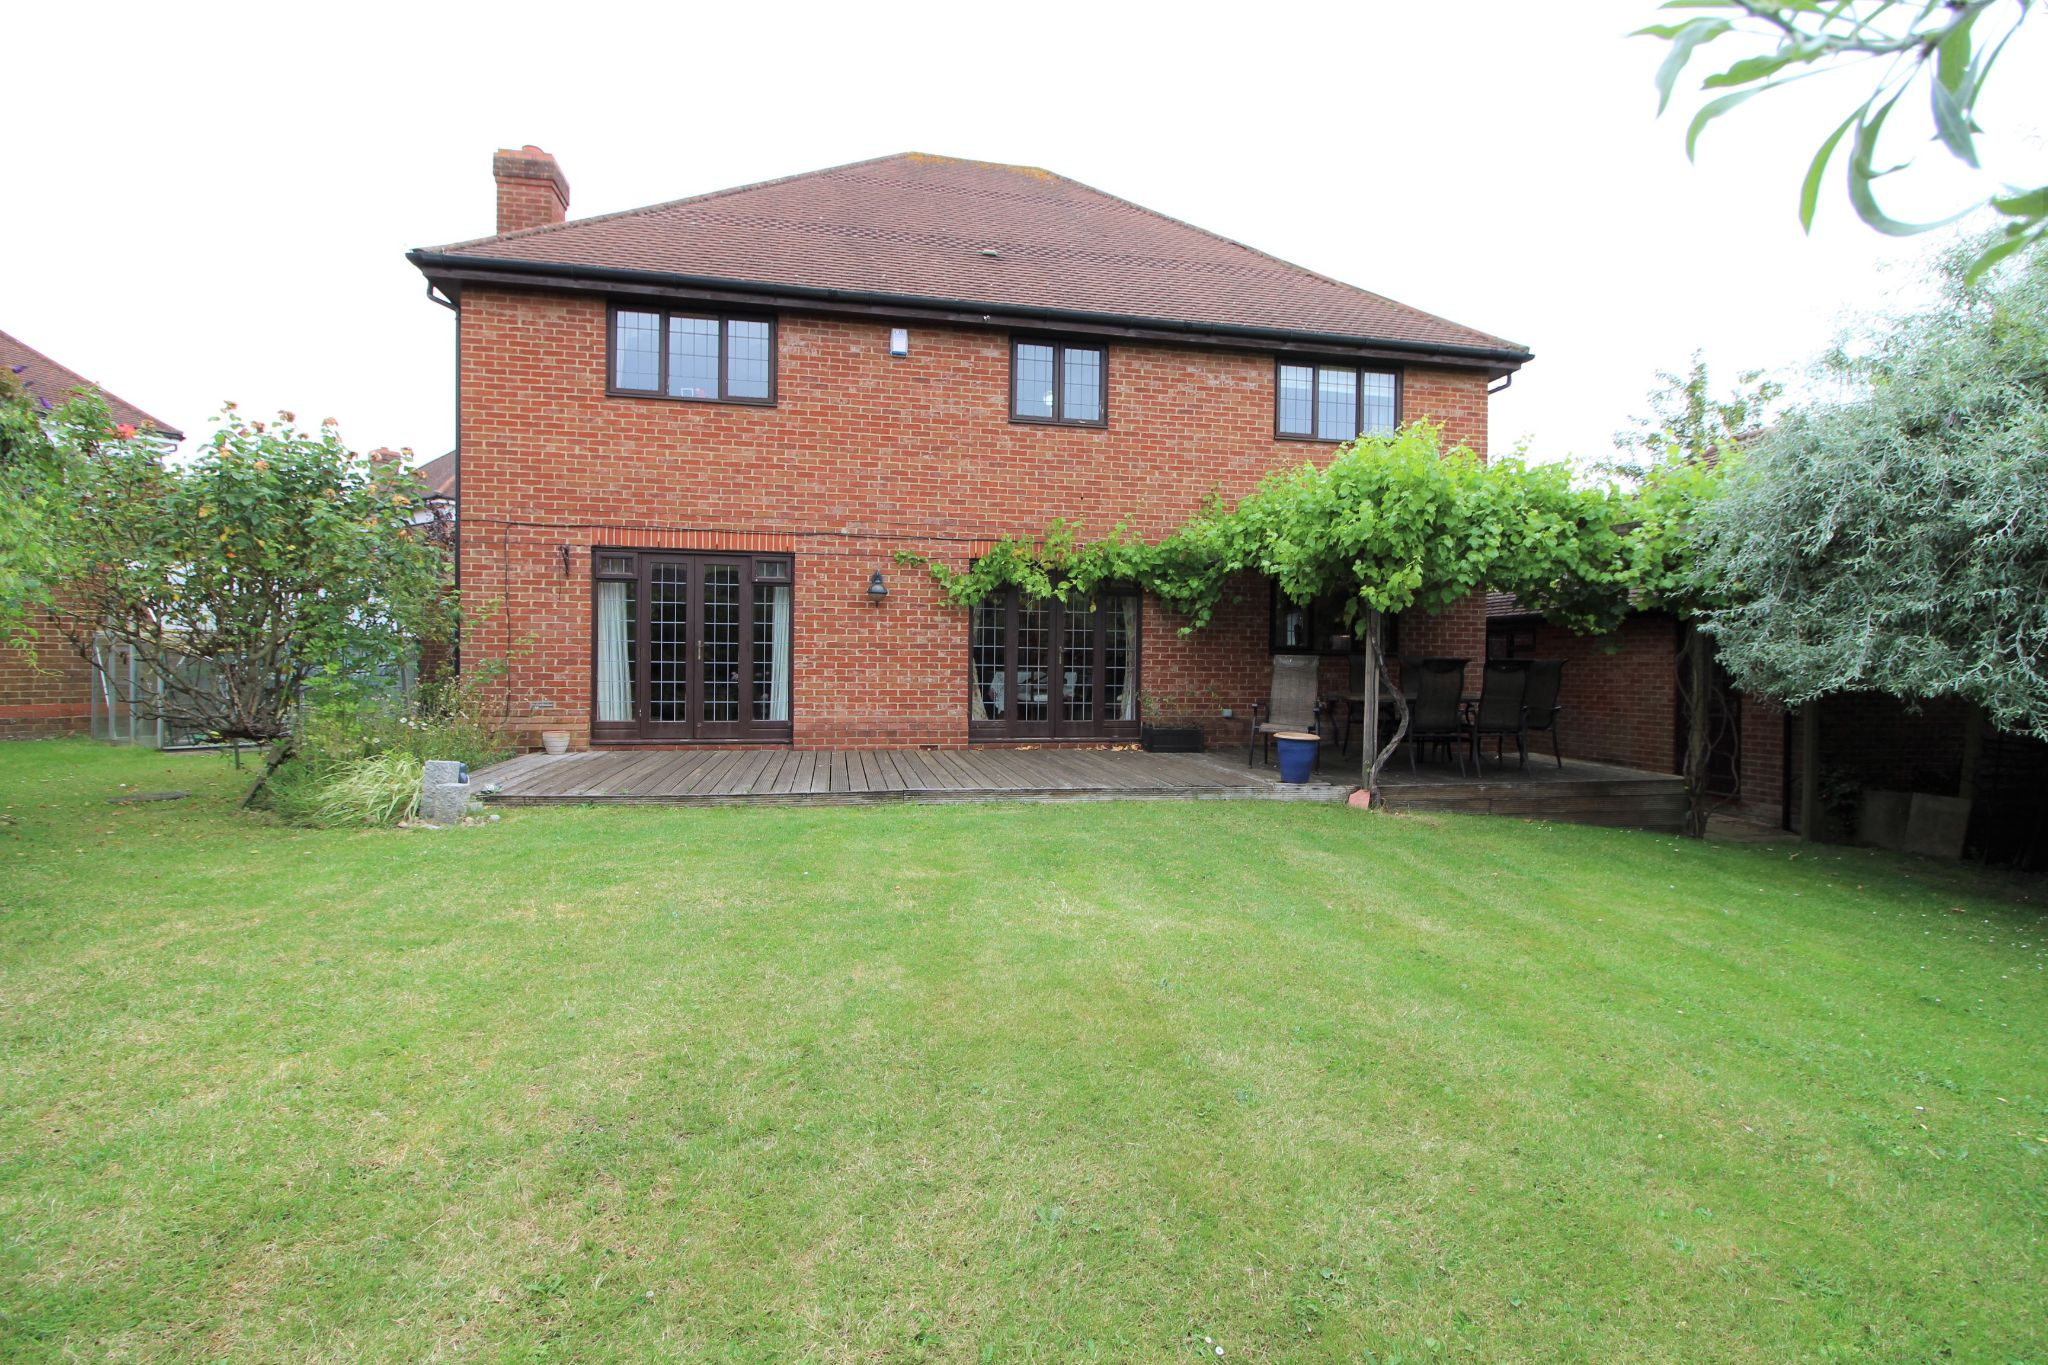 5 bedroom detached house For Sale in West Cheshunt - Photograph 15